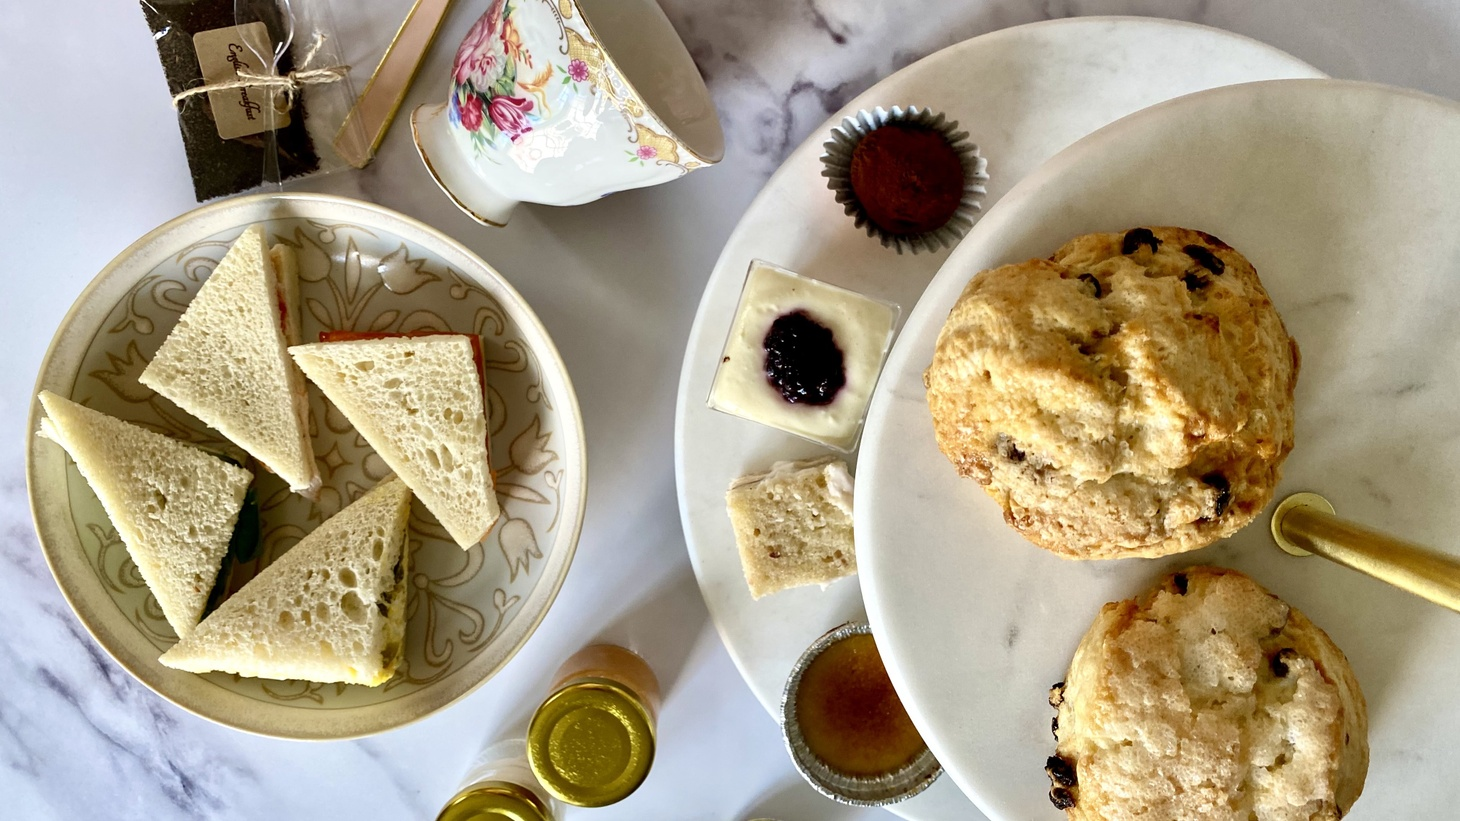 Clementine's Deluxe Afternoon Tea Package comes with loose leaf tea, tea sandwiches, scones, and other sweets. You can set it up like this.